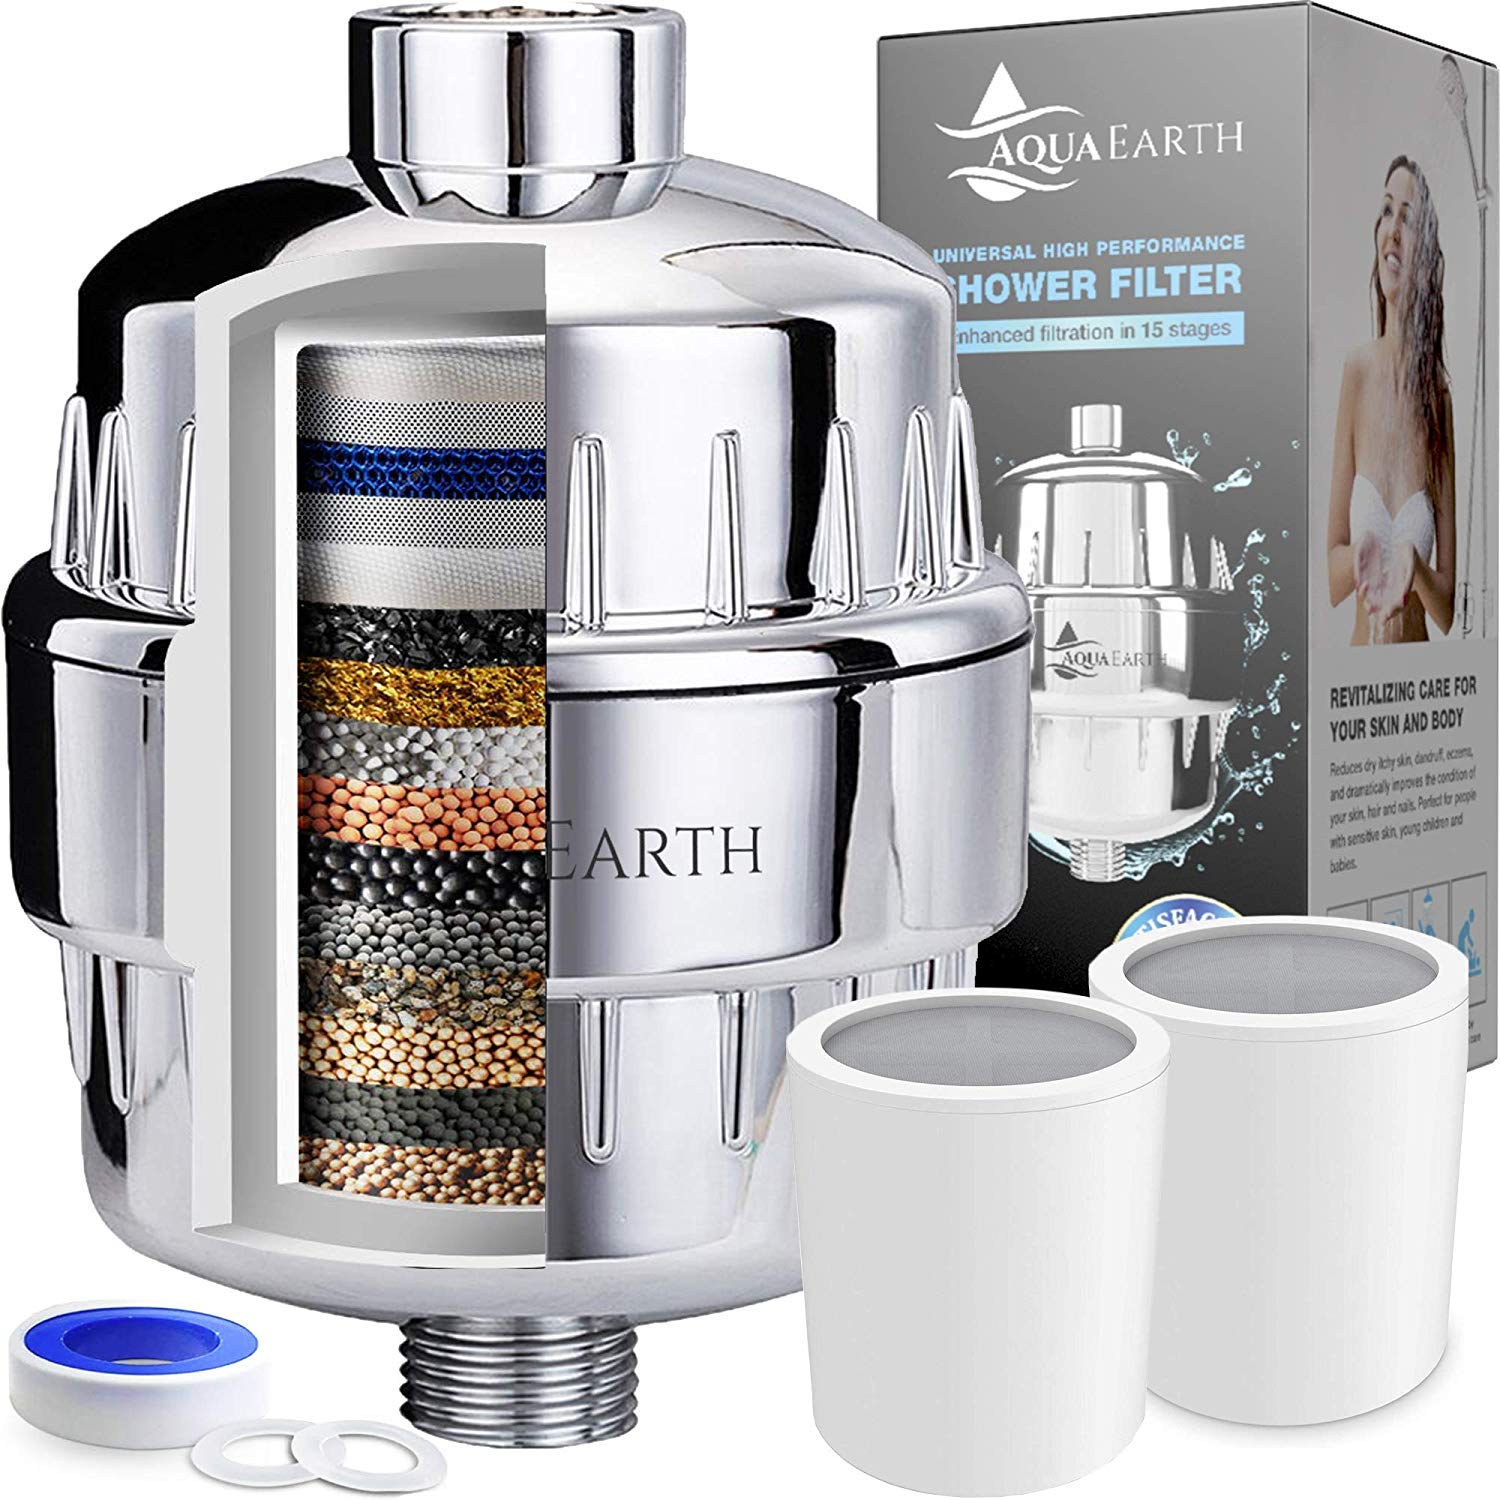 7. Aqua Earth 15-Stage Shower Filter